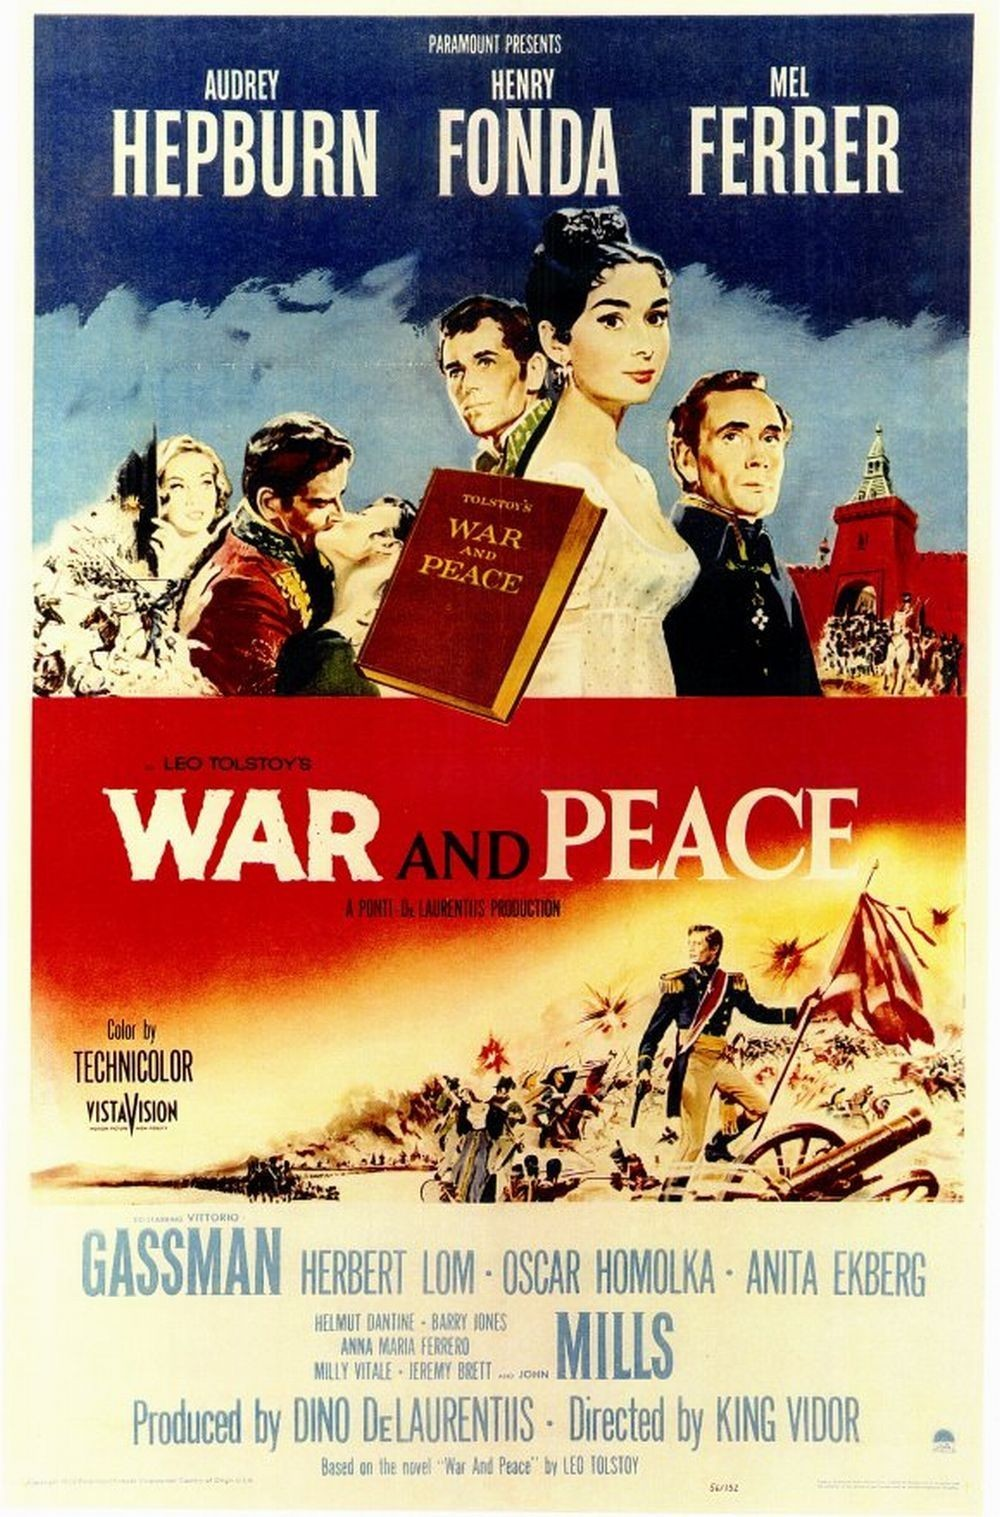 Audrey Hepburn Movie Posters Added to the Picture Gallery ...